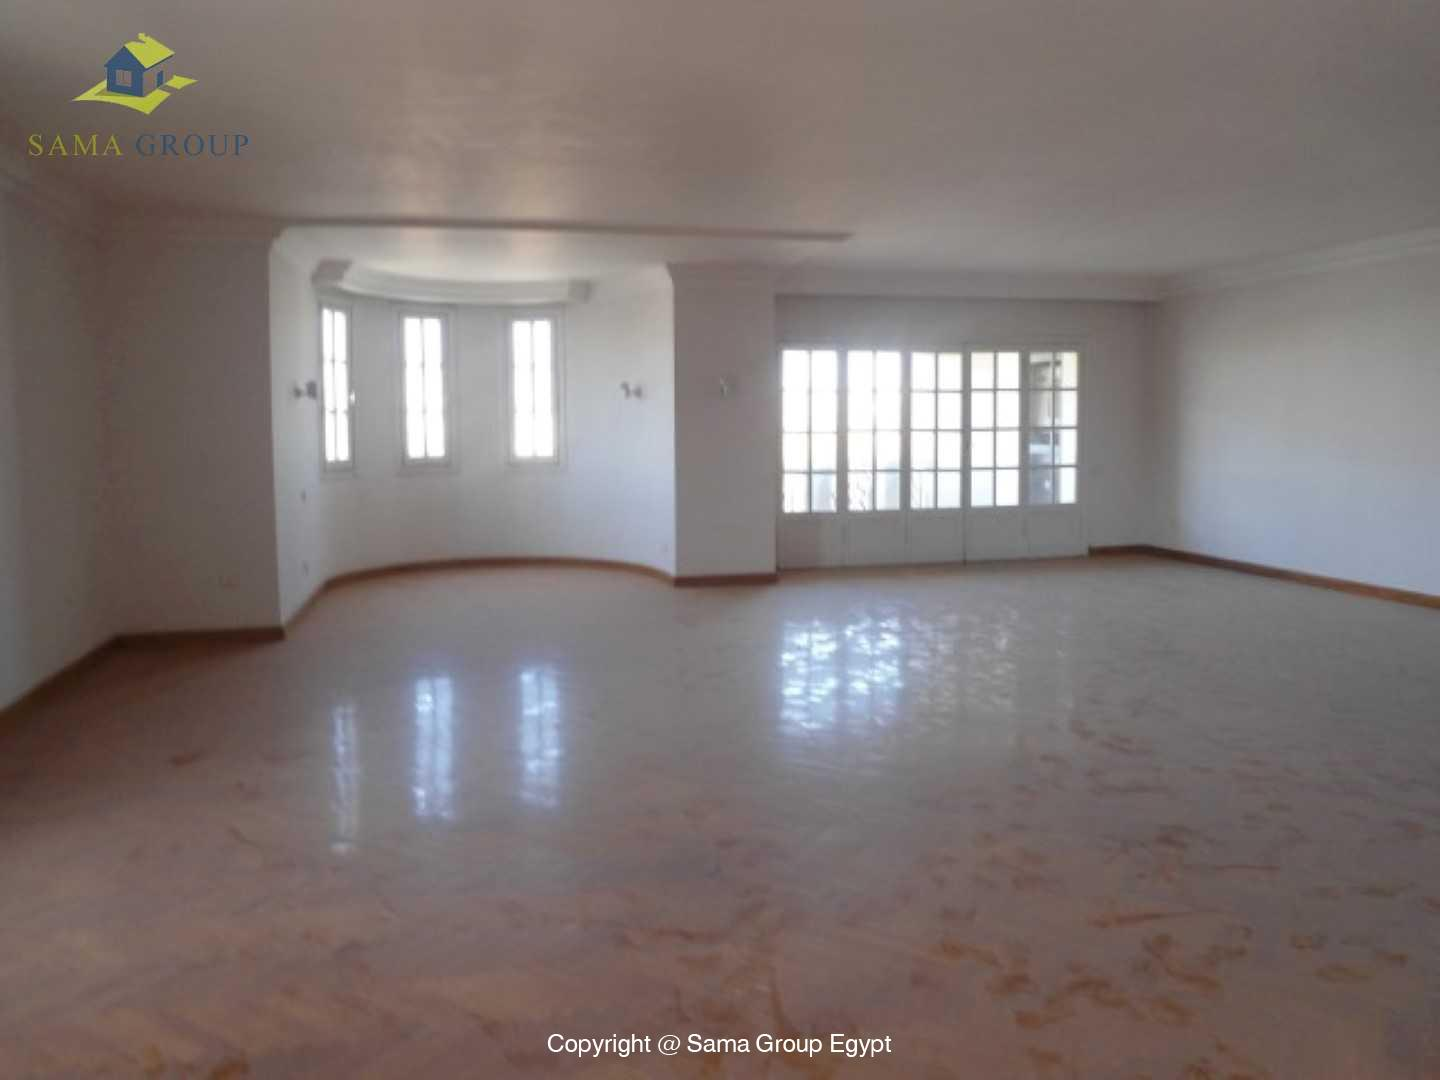 Penthouse Triplex with Swimming Pool For Rent In Maadi,Semi furnished,Penthouse NO #21